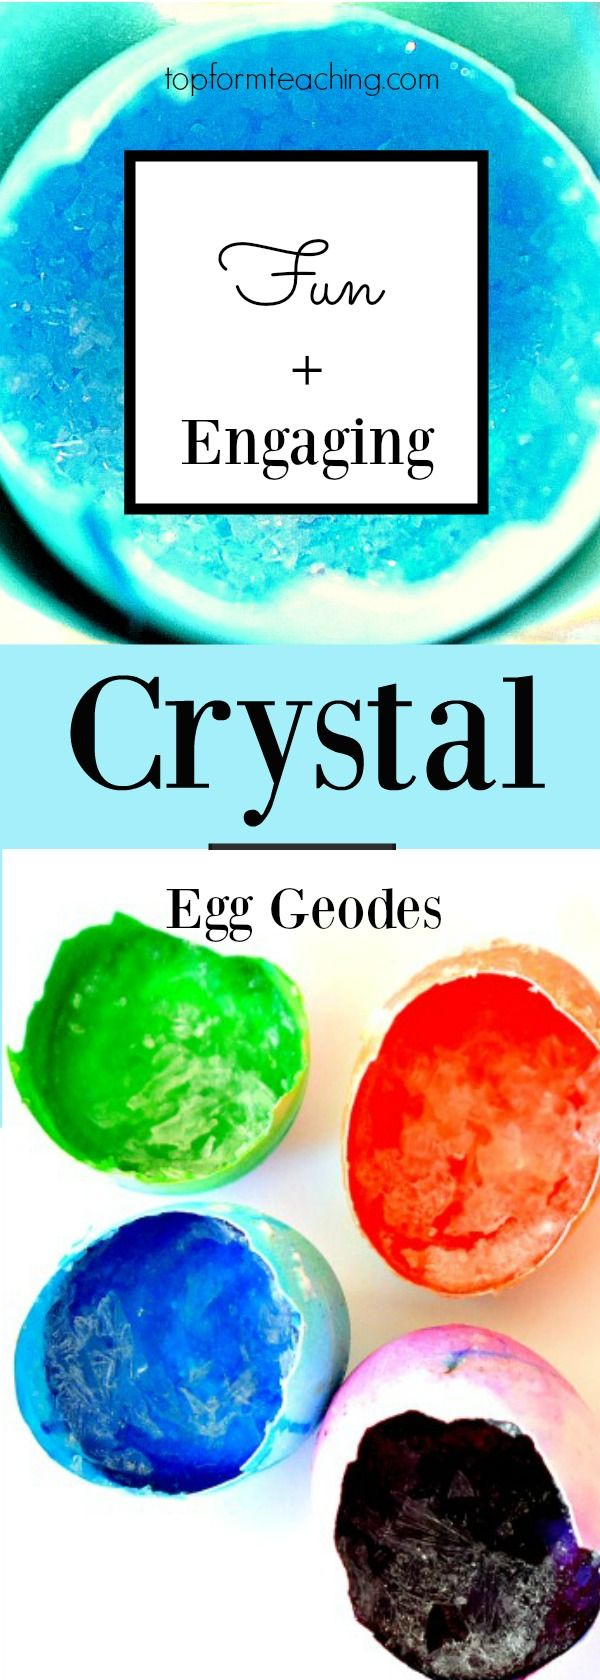 This fun and engaging crystal egg geodes experiment allows your students to grow crystals using egg shells and basic household products.